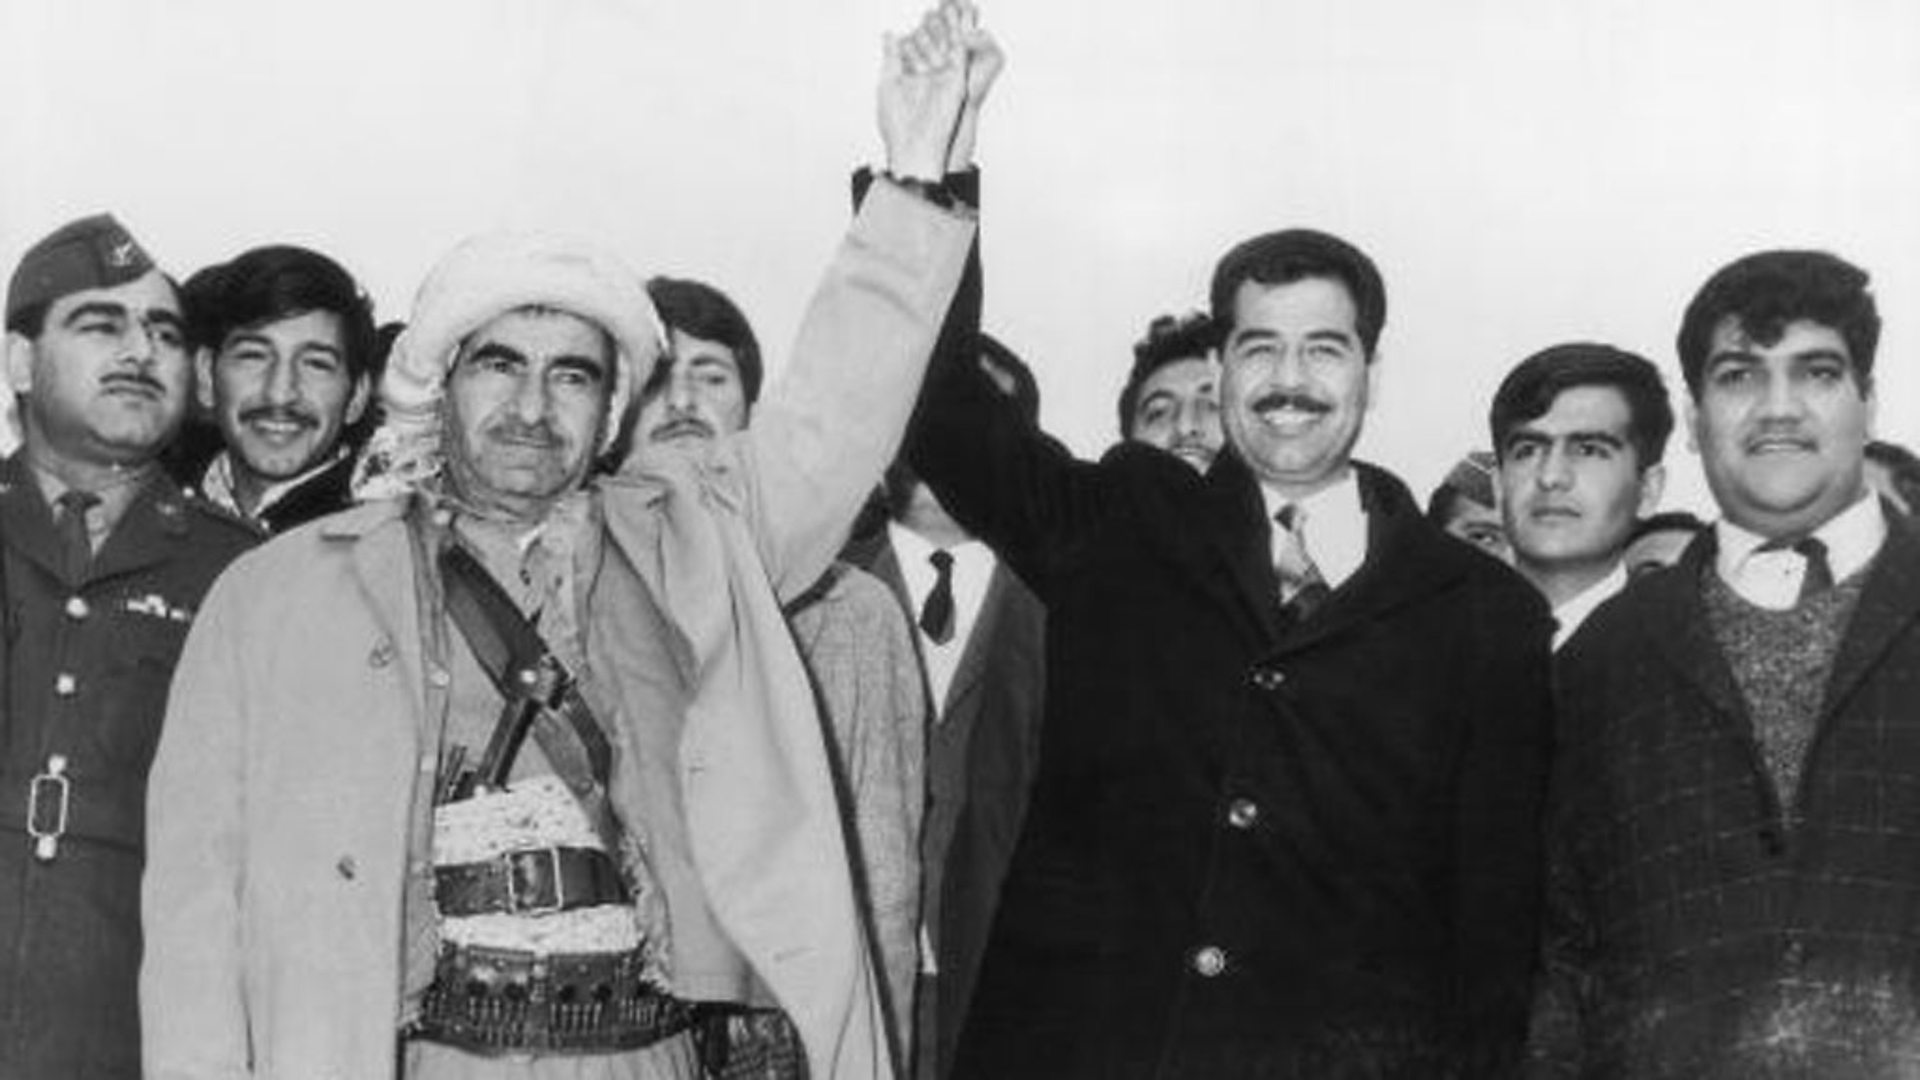 Image Mulla Mustafa Barzani, leader of the Kurdistan Democratic Party, holds hands with Saddam Hussein (BBC)